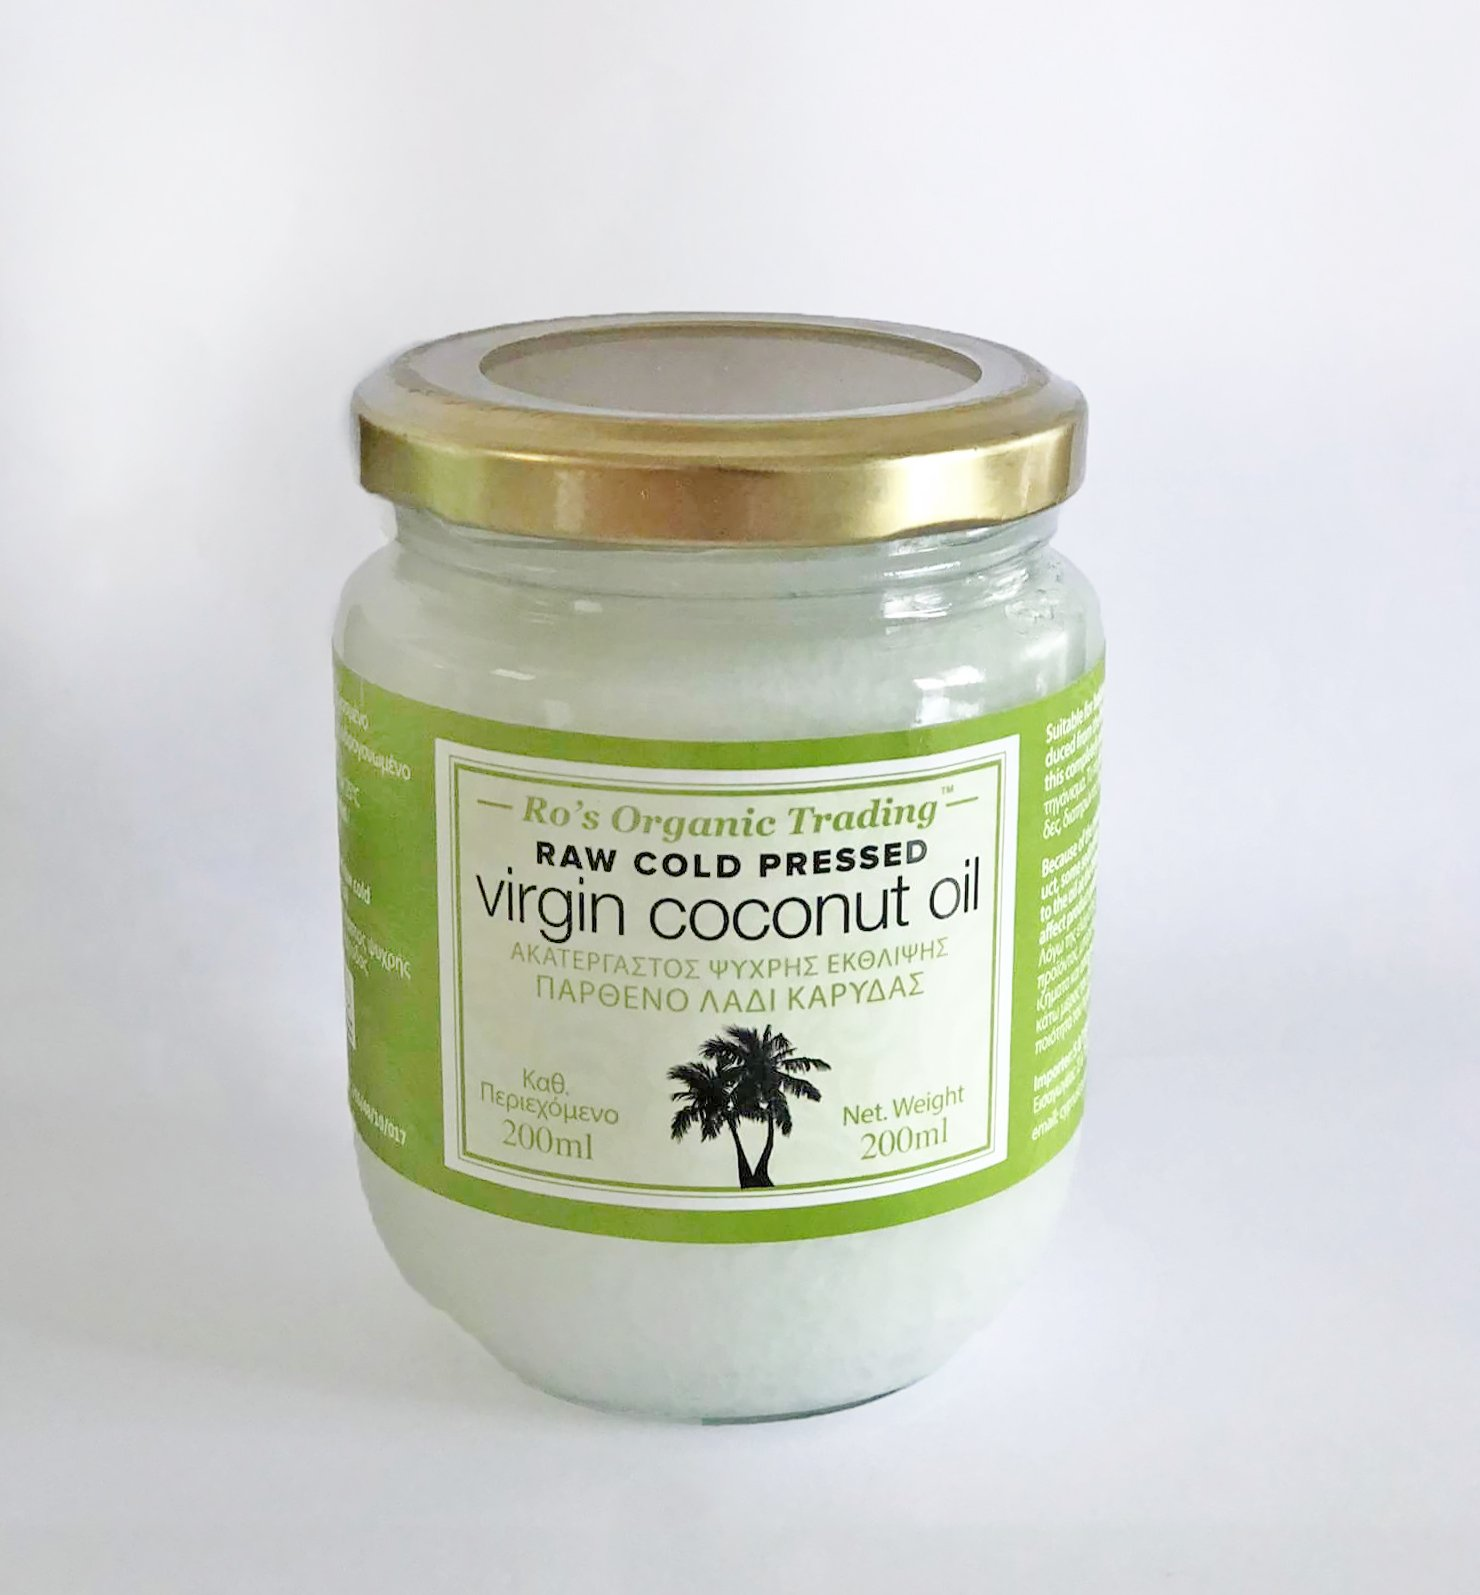 Virgin Coconut Oil 200ml, can be used as a base oil for essential oils